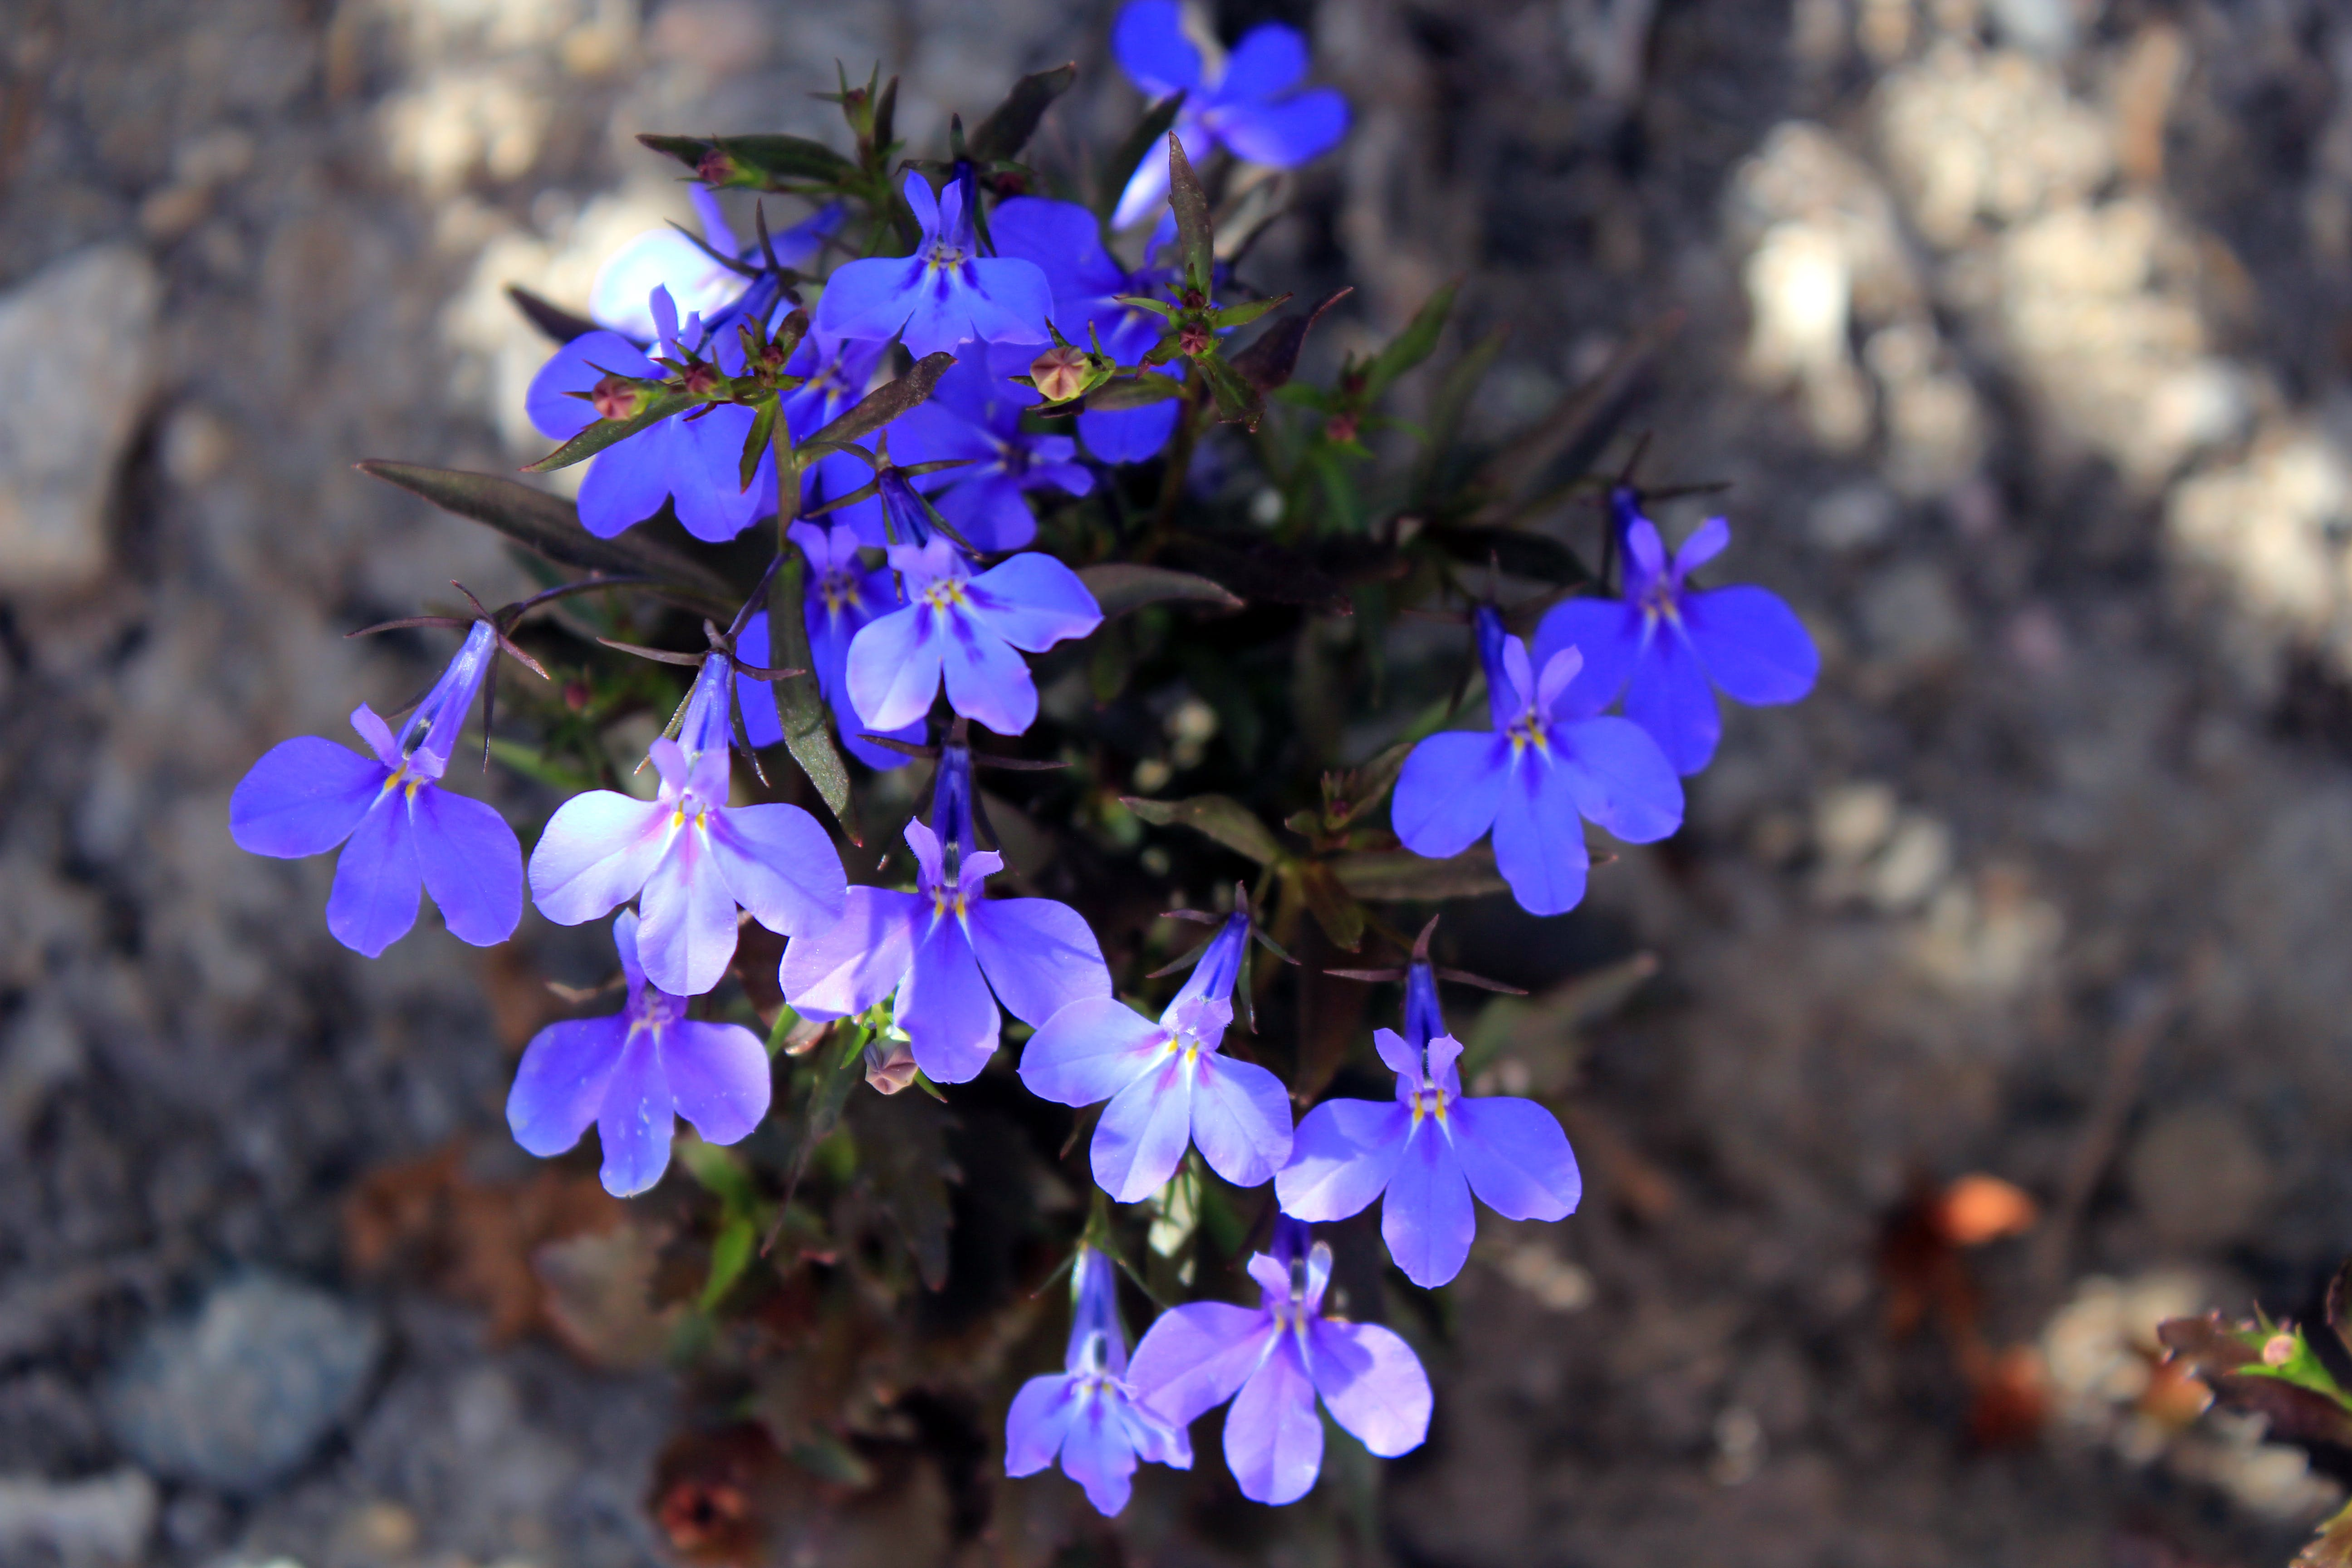 Free stock photo of blue flowers